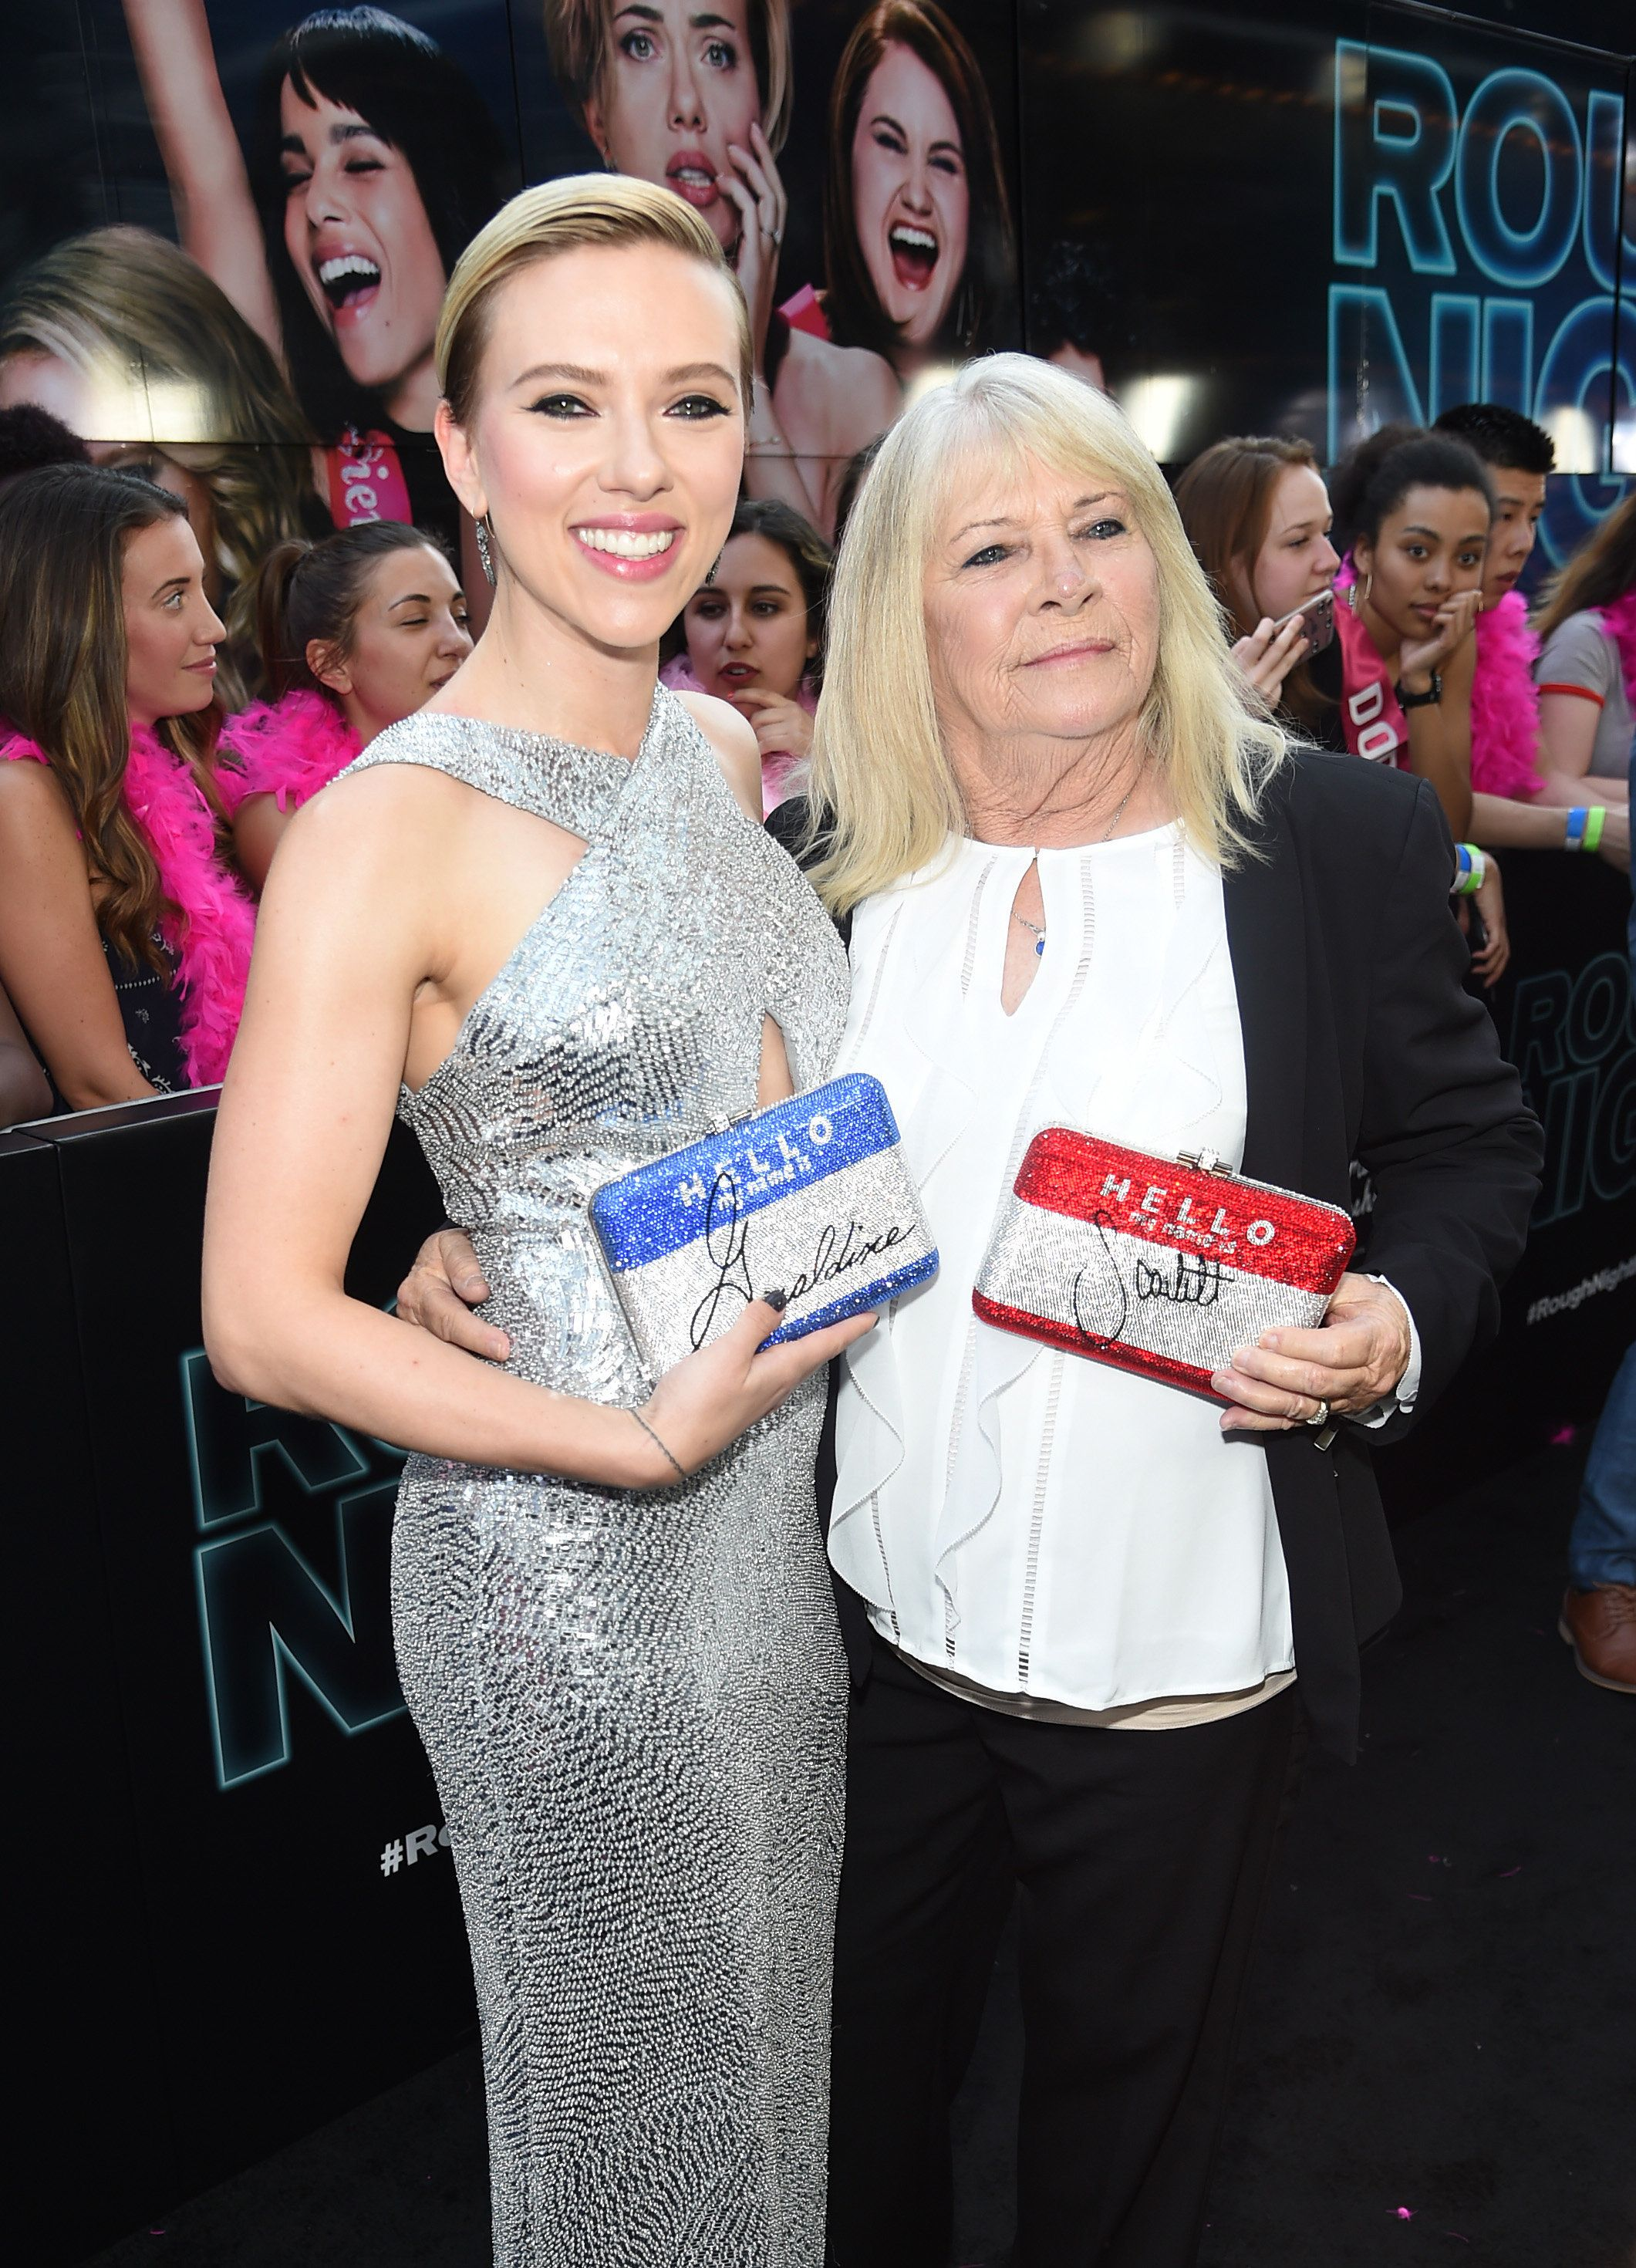 NEW YORK, NY - JUNE 12:  Scarlett Johansson and Geraldine Dodd attend New York Premiere of Sony's ROUGH NIGHT presented by SVEDKA Vodka  at AMC Lincoln Square Theater on June 12, 2017 in New York City.  (Photo by Jamie McCarthy/Getty Images for SVEDKA Vodka)